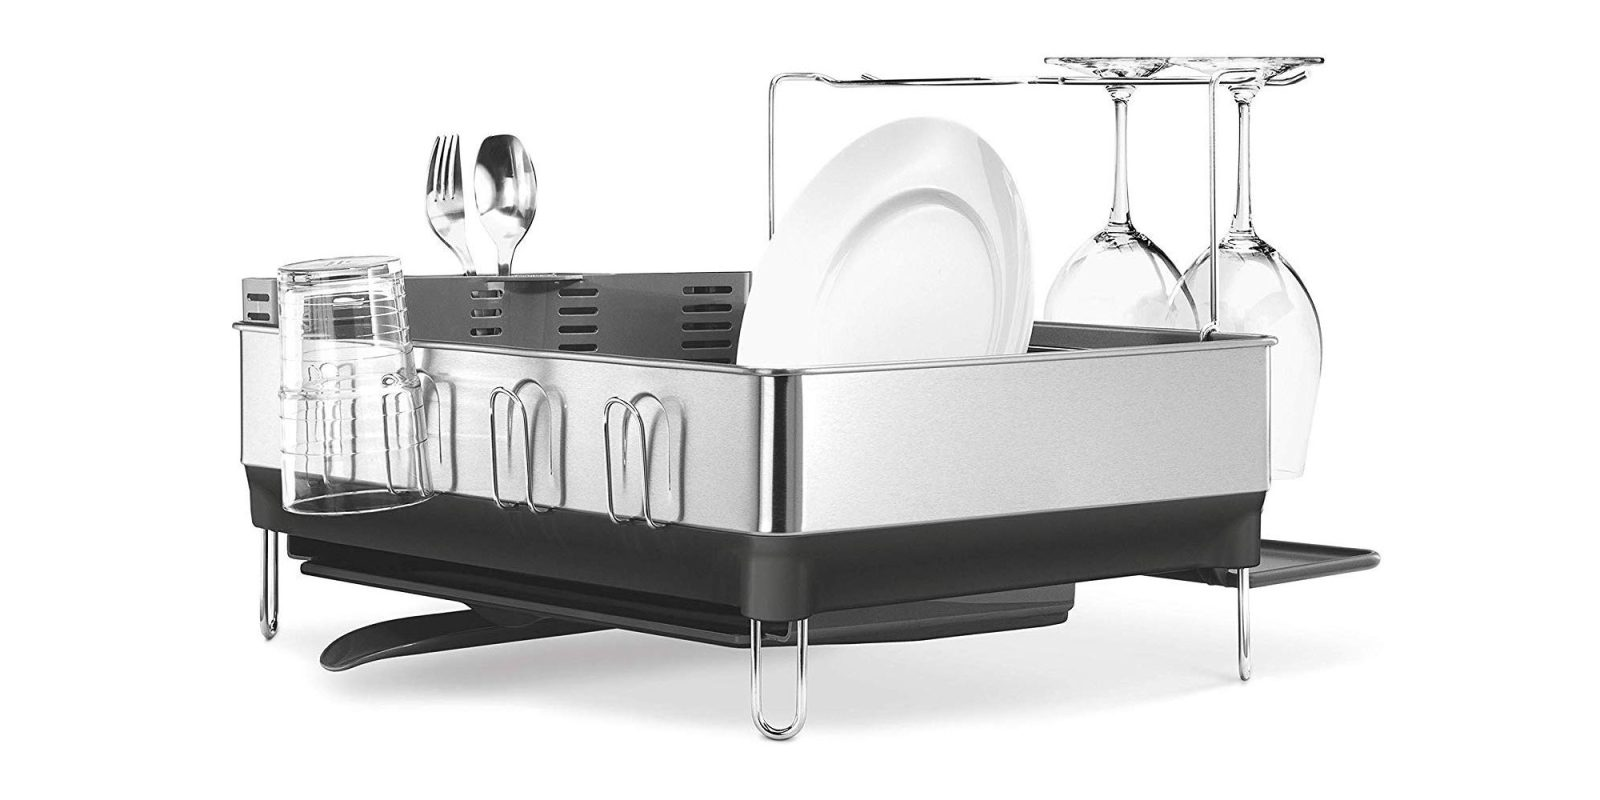 A touch of elegance for the countertop: simplehuman Dish Rack $64 (Reg. $80)